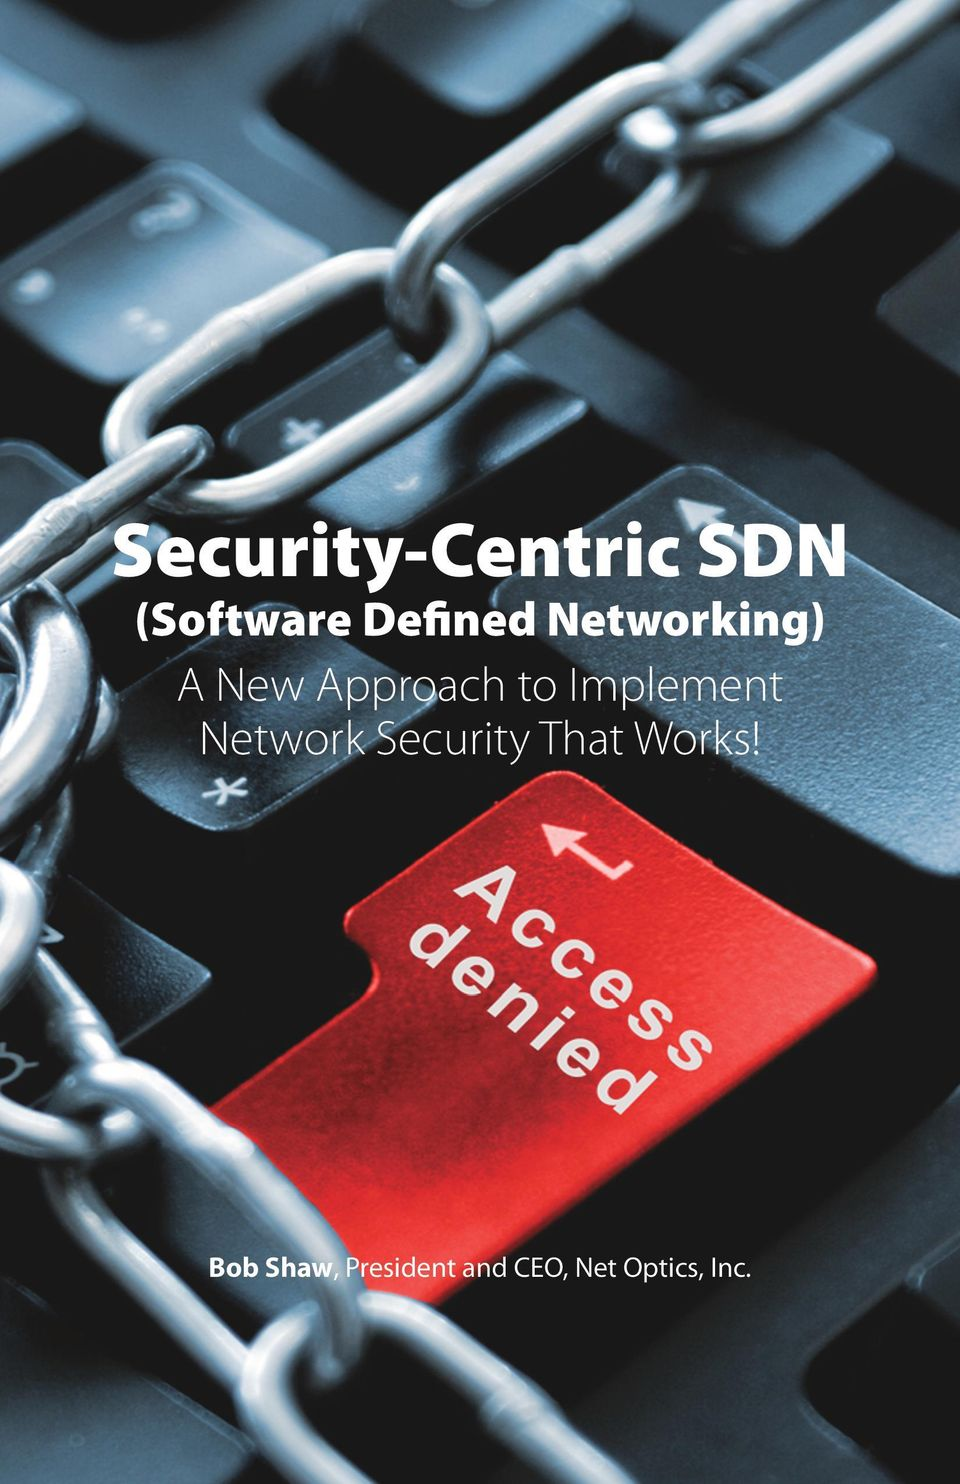 Implement Network Security That Works!